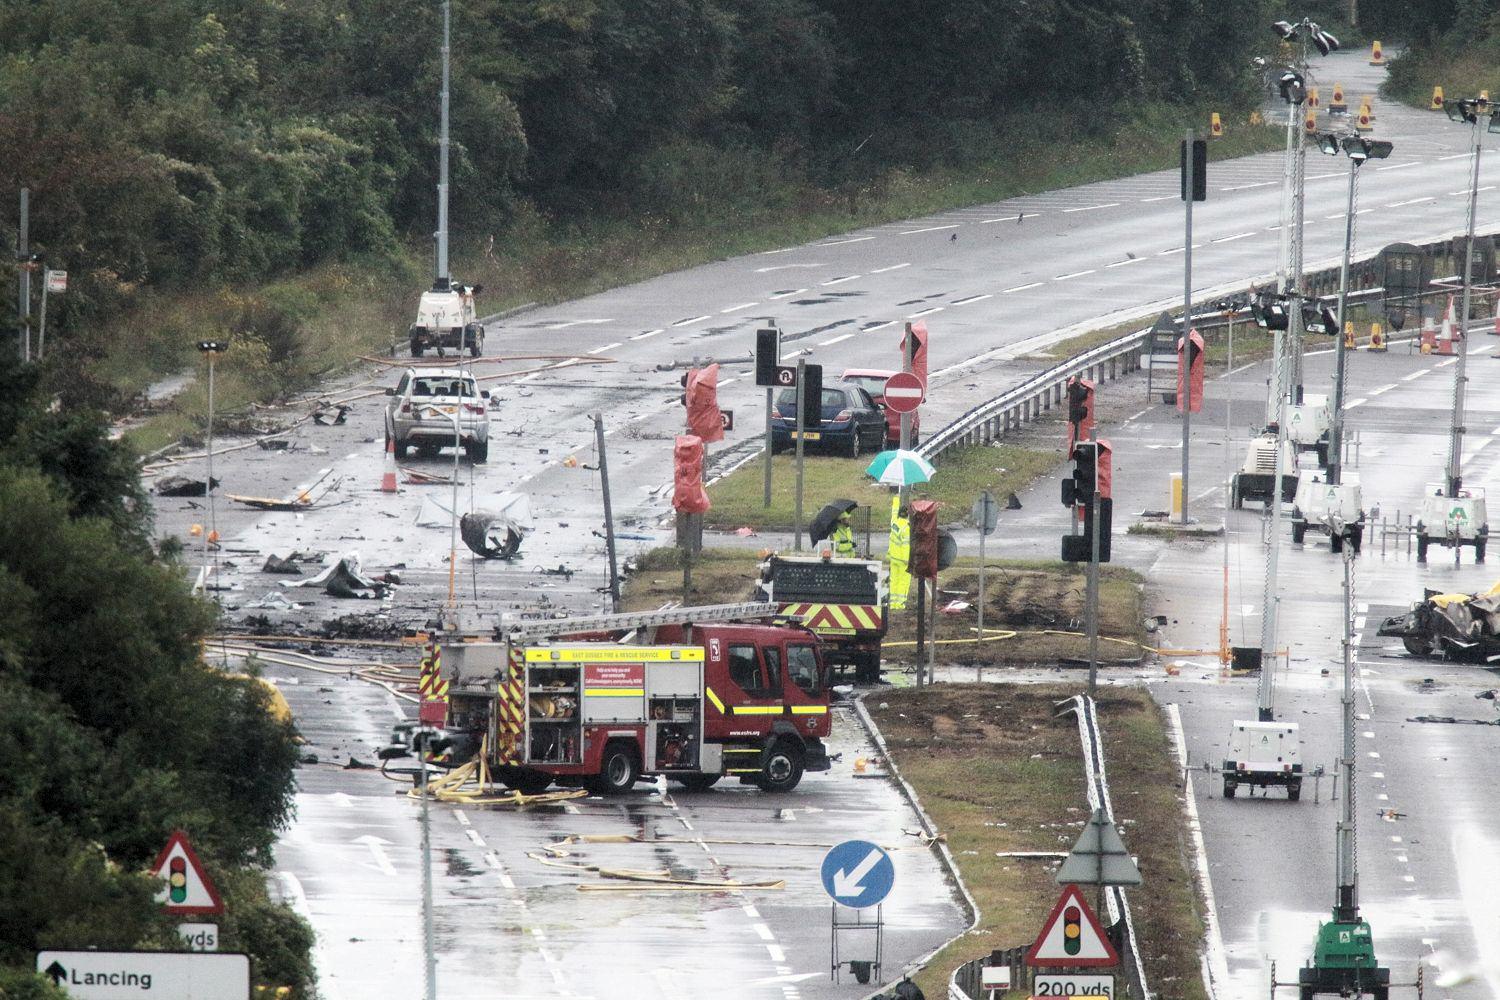 Dramatic New Details Of Shoreham Airshow Crash Have Been Revealed UNILAD Eddie Mitchell7